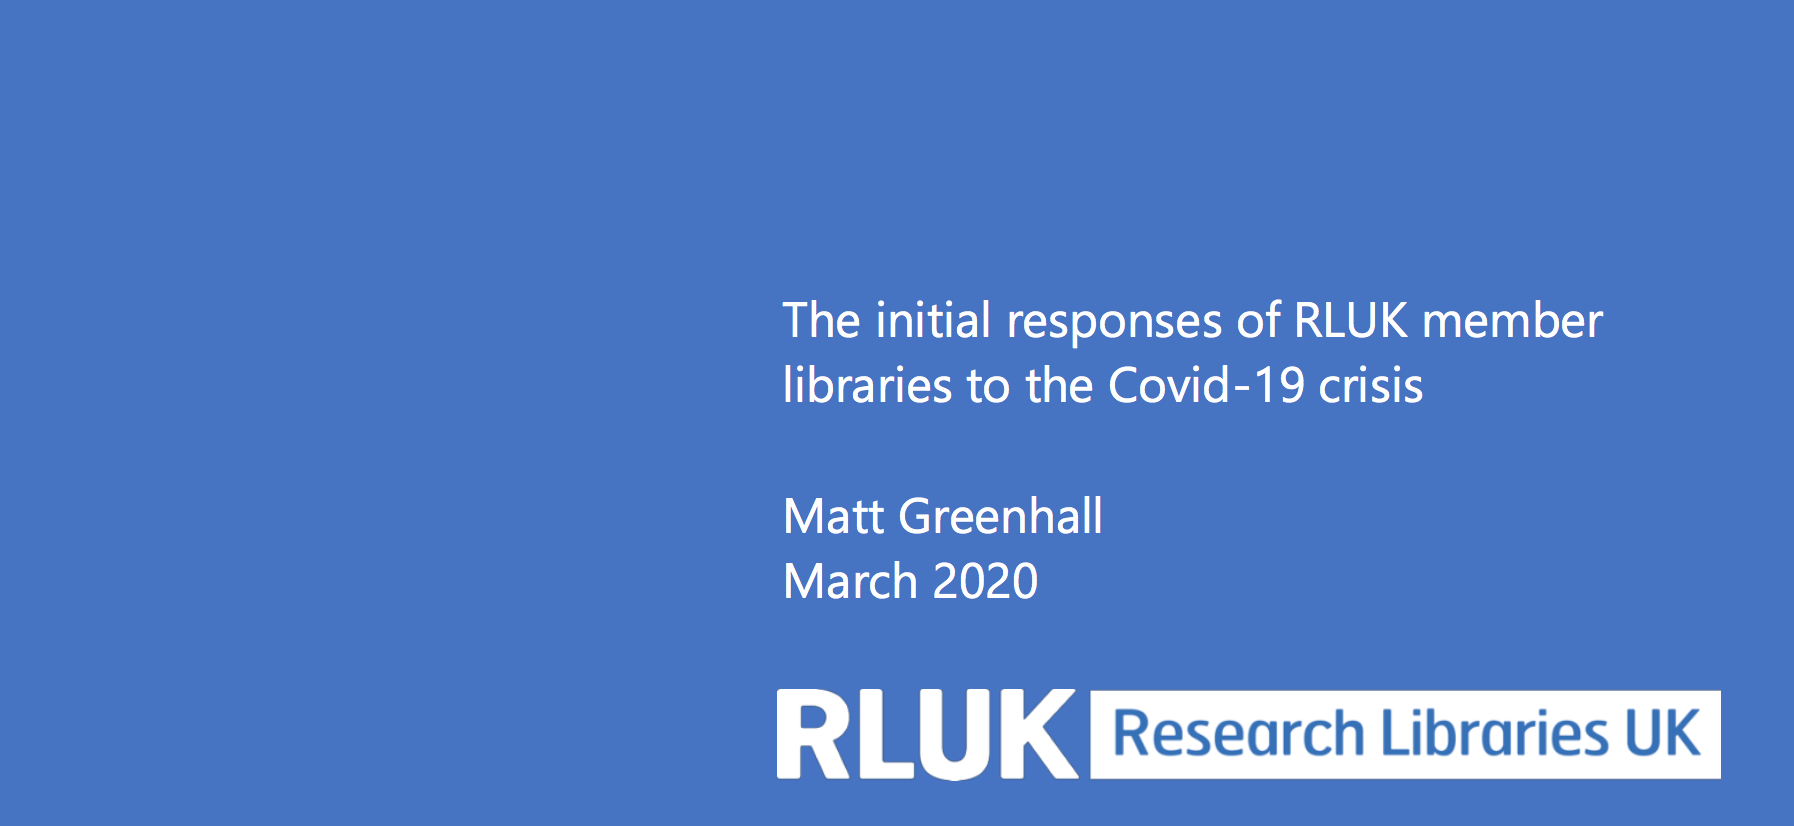 The initial responses of RLUK member libraries to the Covid-19 crisis